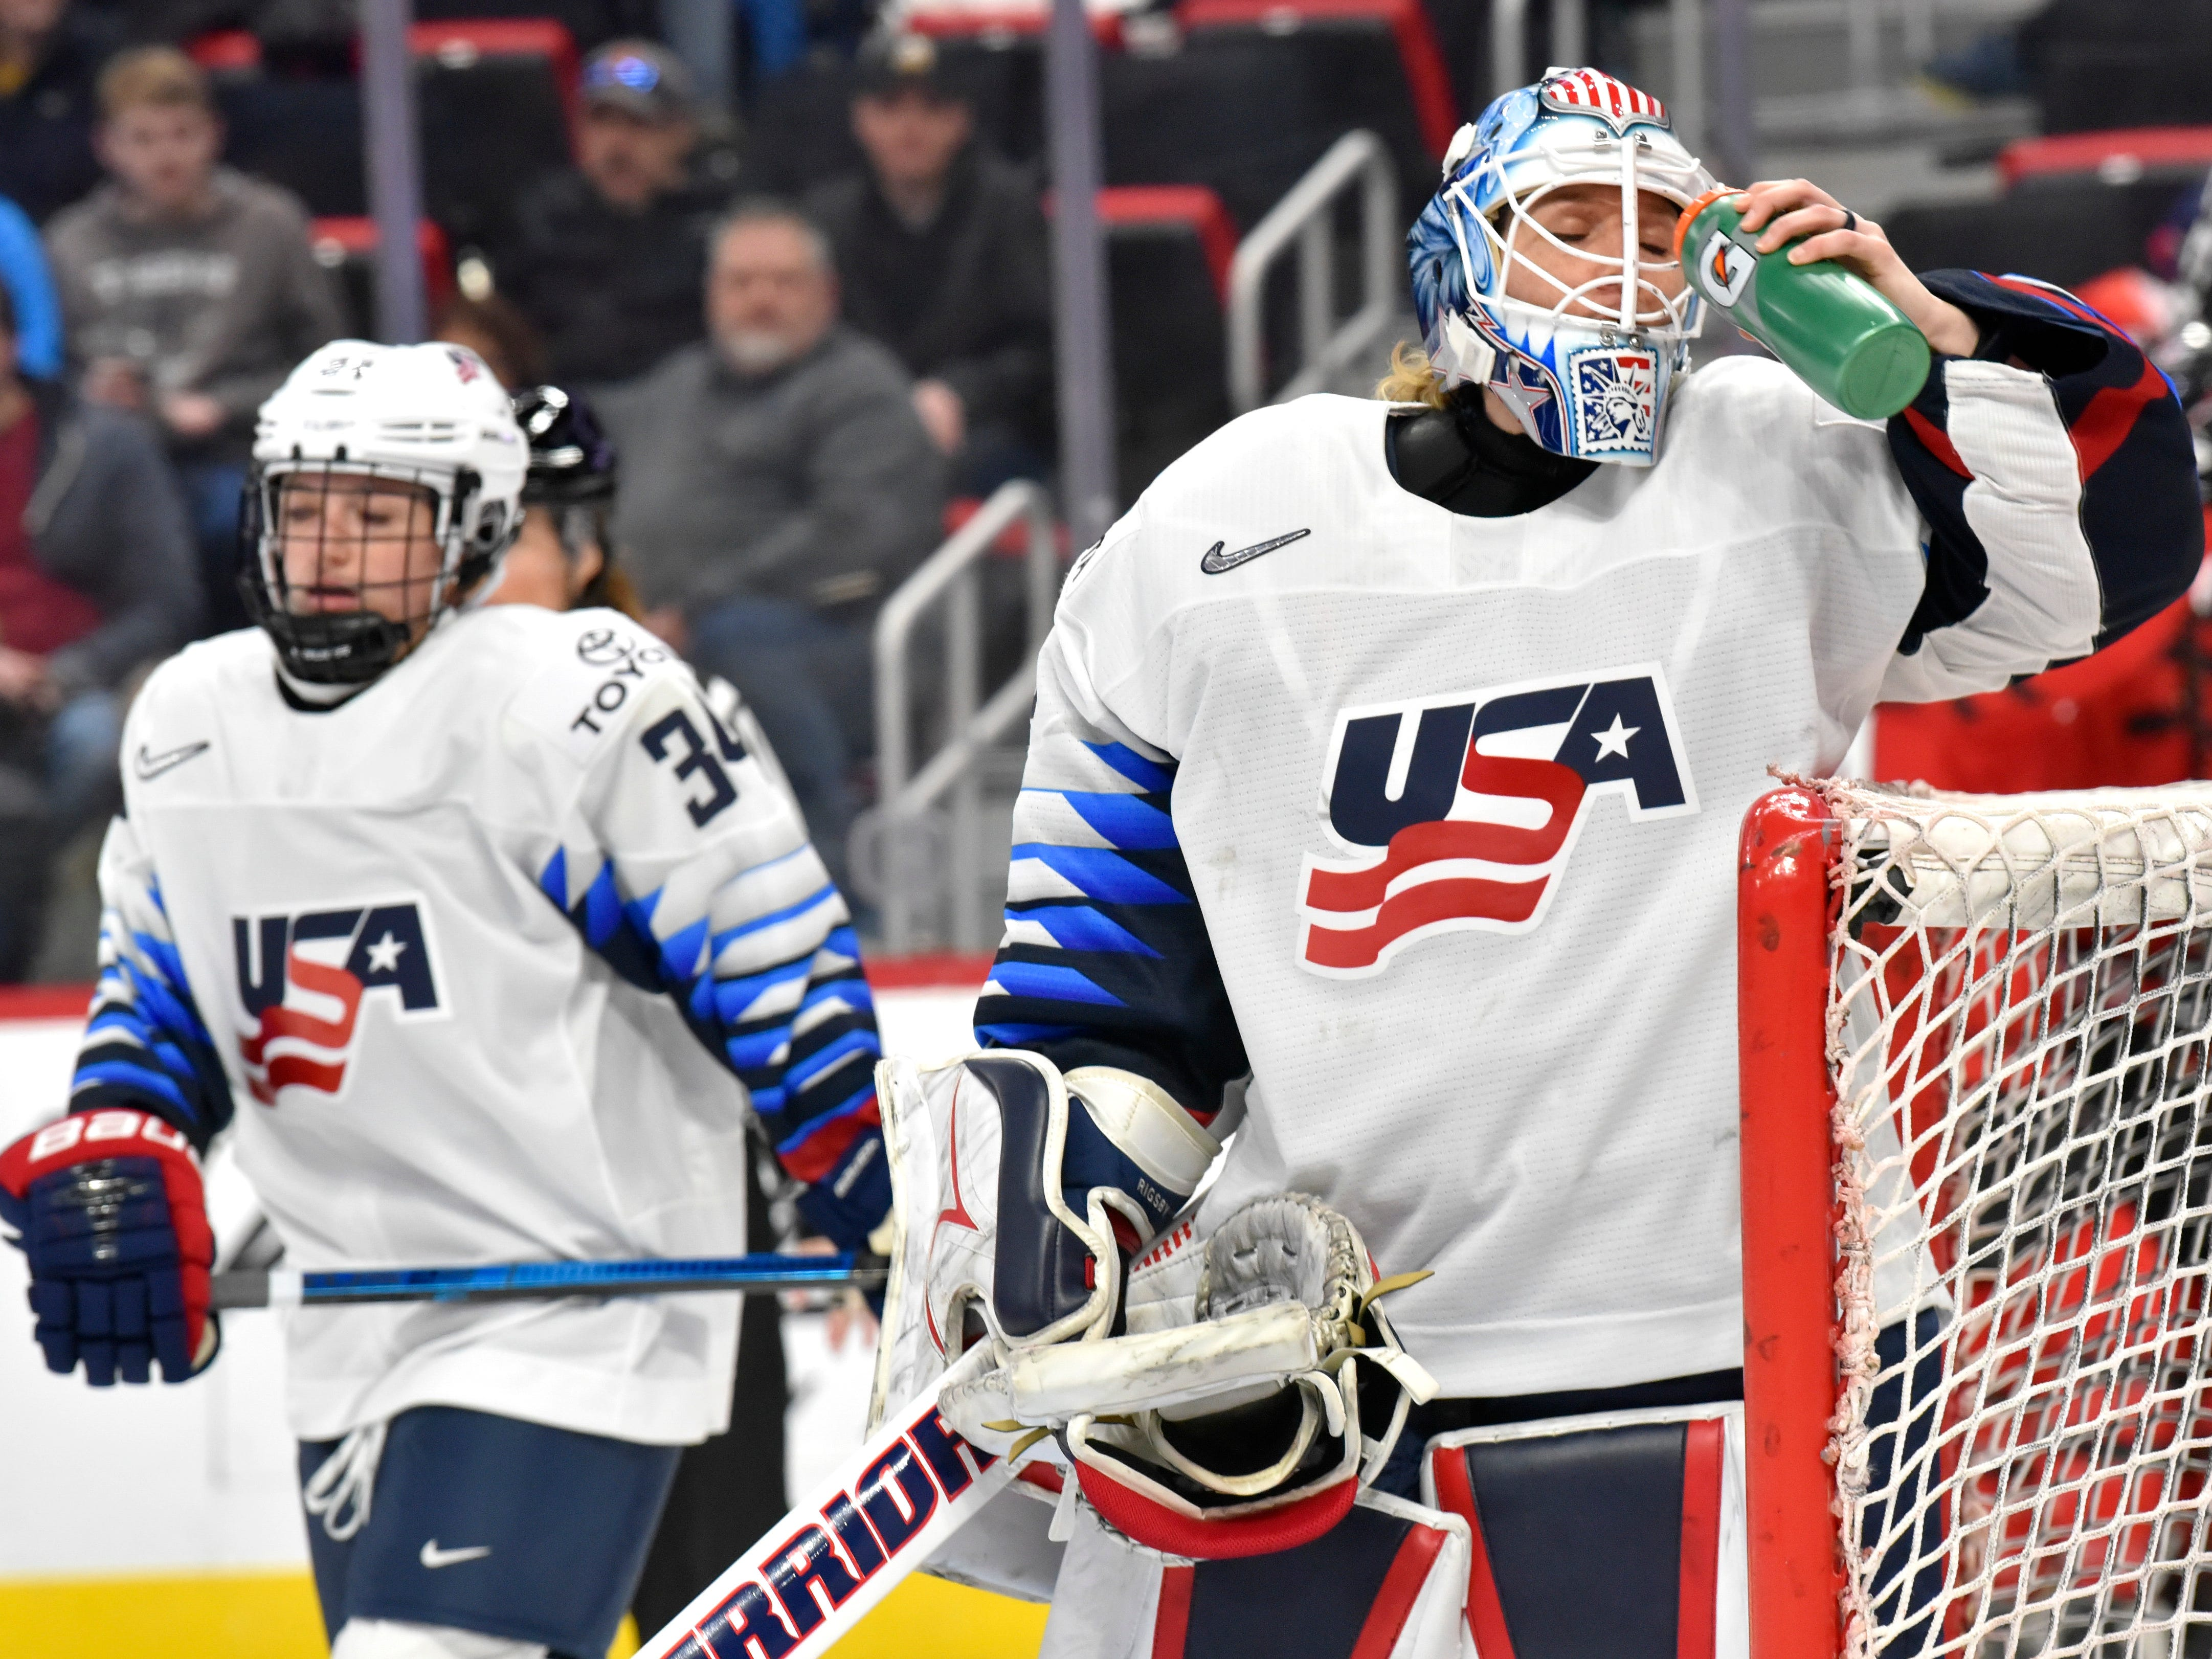 U.S. goalie Alex Rigsby(33) takes a drink after the puck gets past her in the second period for Canada's second goal.   XXXXduring second and third period action between the U.S. Women's National Hockey Team and Canada's National Women's Team at Little Caesars Arena in Detroit during the 2019 Rivalry Series, Sunday afternoon, February 17, 2019. Canada wins, 2-0. (Todd McInturf, The Detroit News)2019.